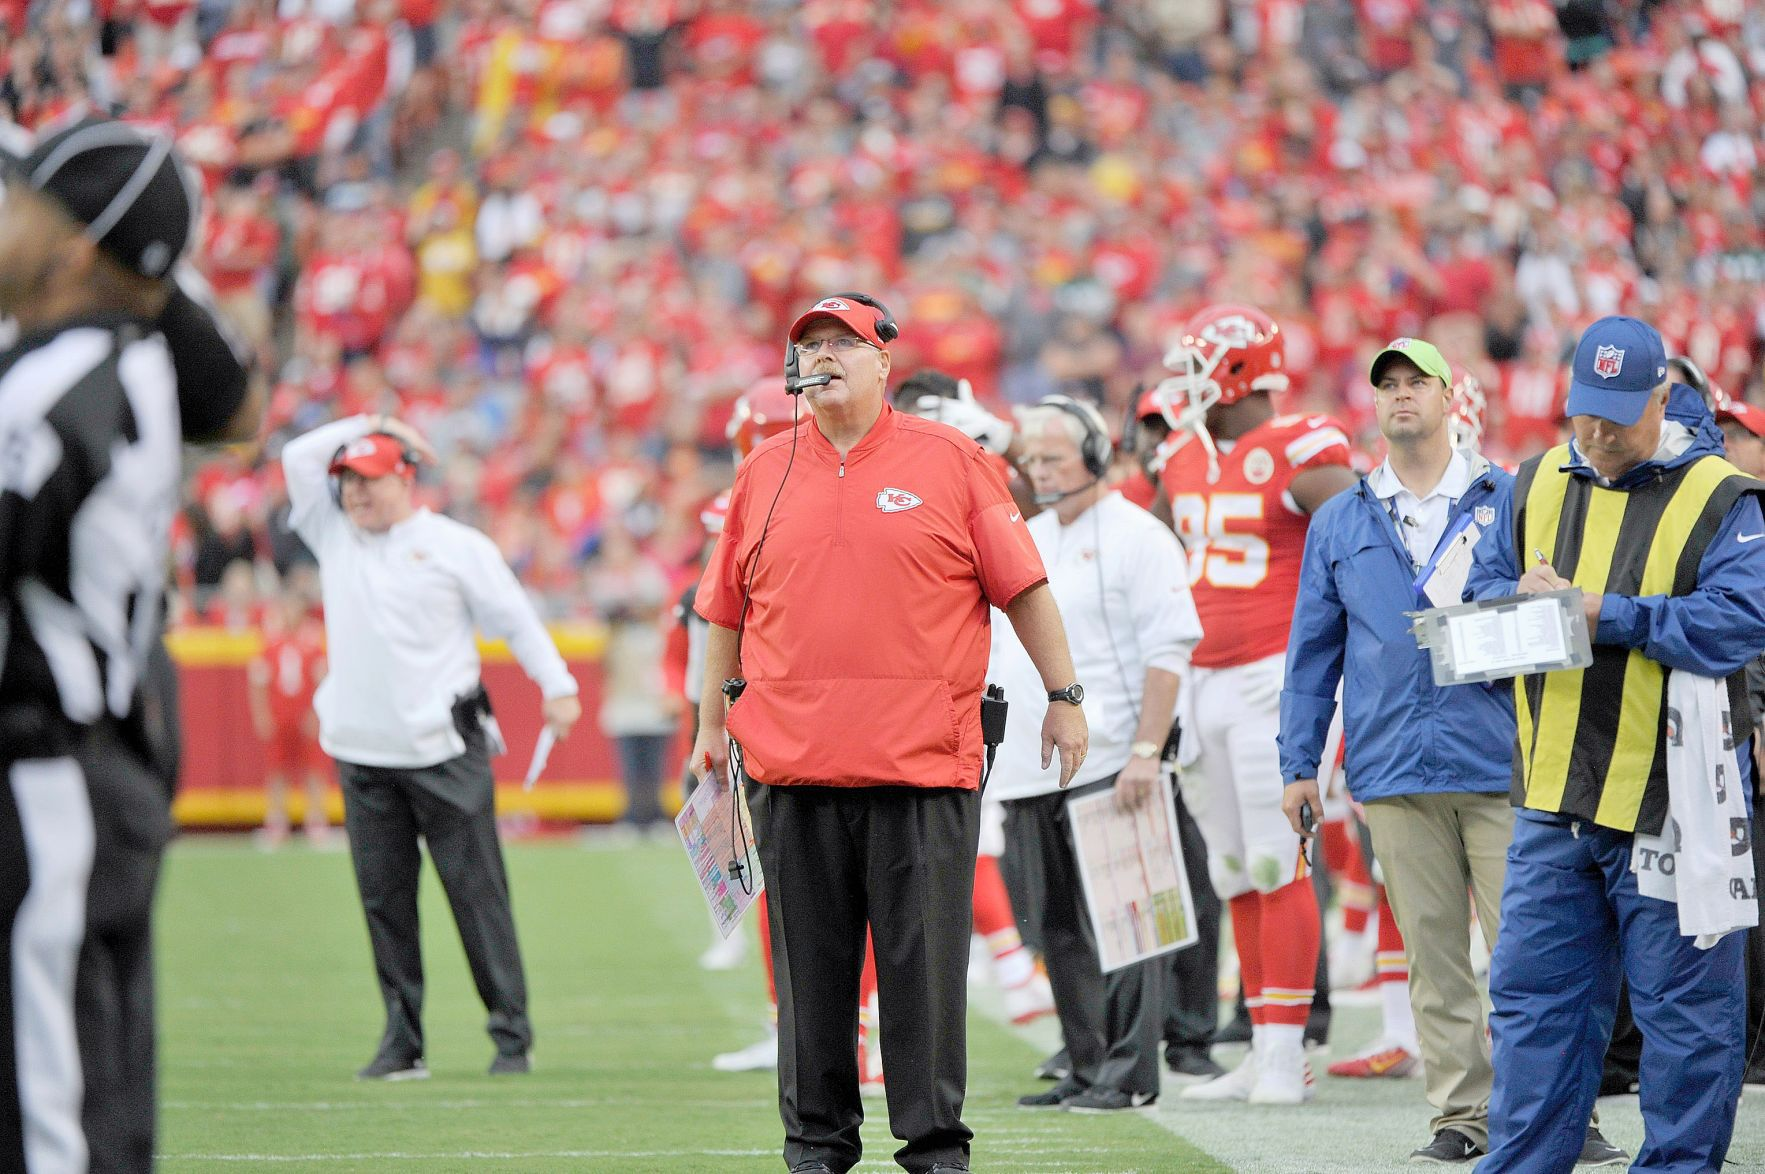 Chiefs' CEO Hunt talks about decision to move on from Dorsey